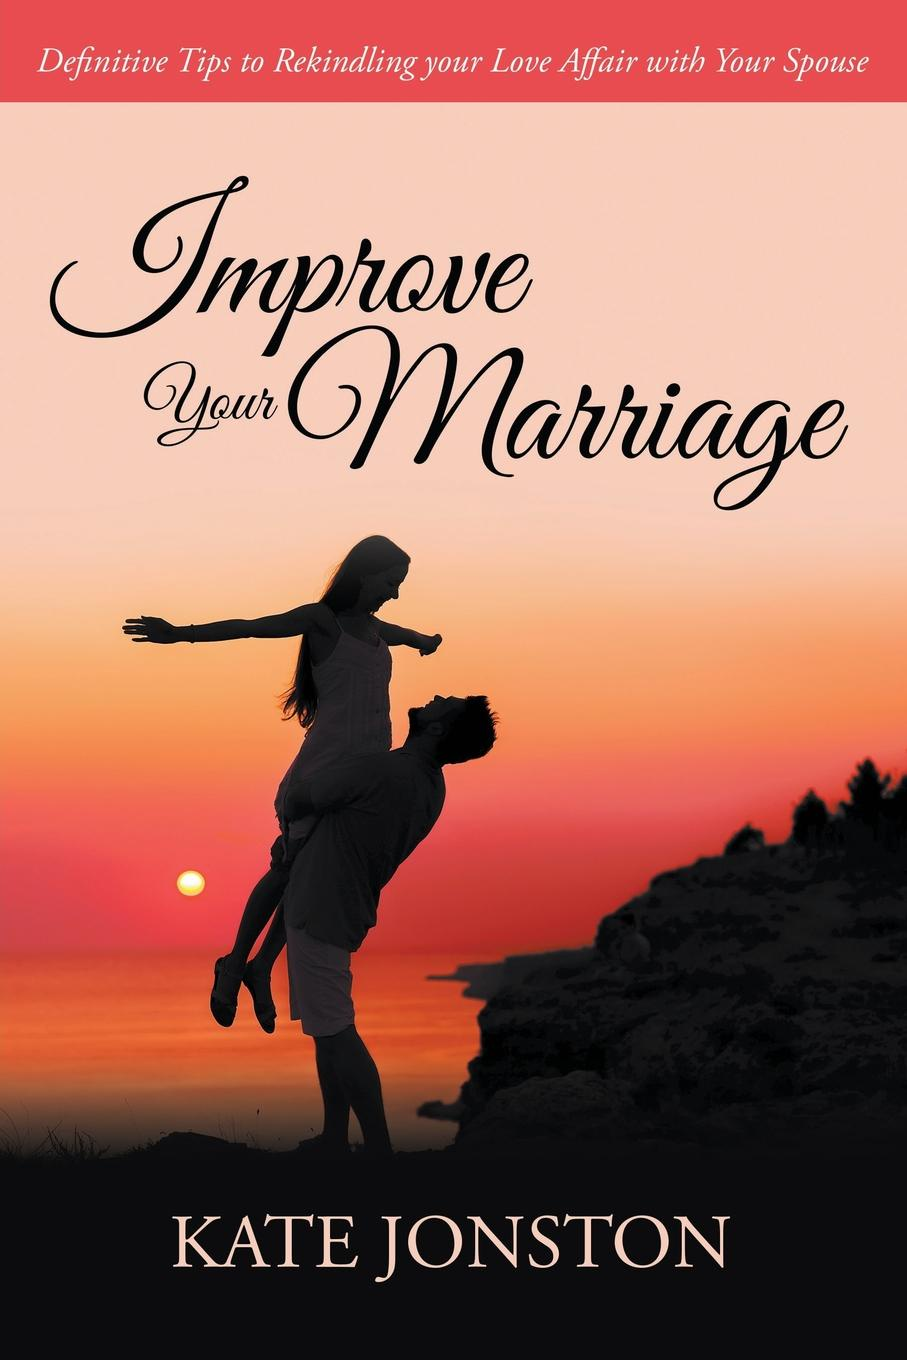 Kate Jonston Improve Your Marriage. Definitive Tips to Rekindling your Love Affair with Your Spouse kate hewitt moretti s marriage command